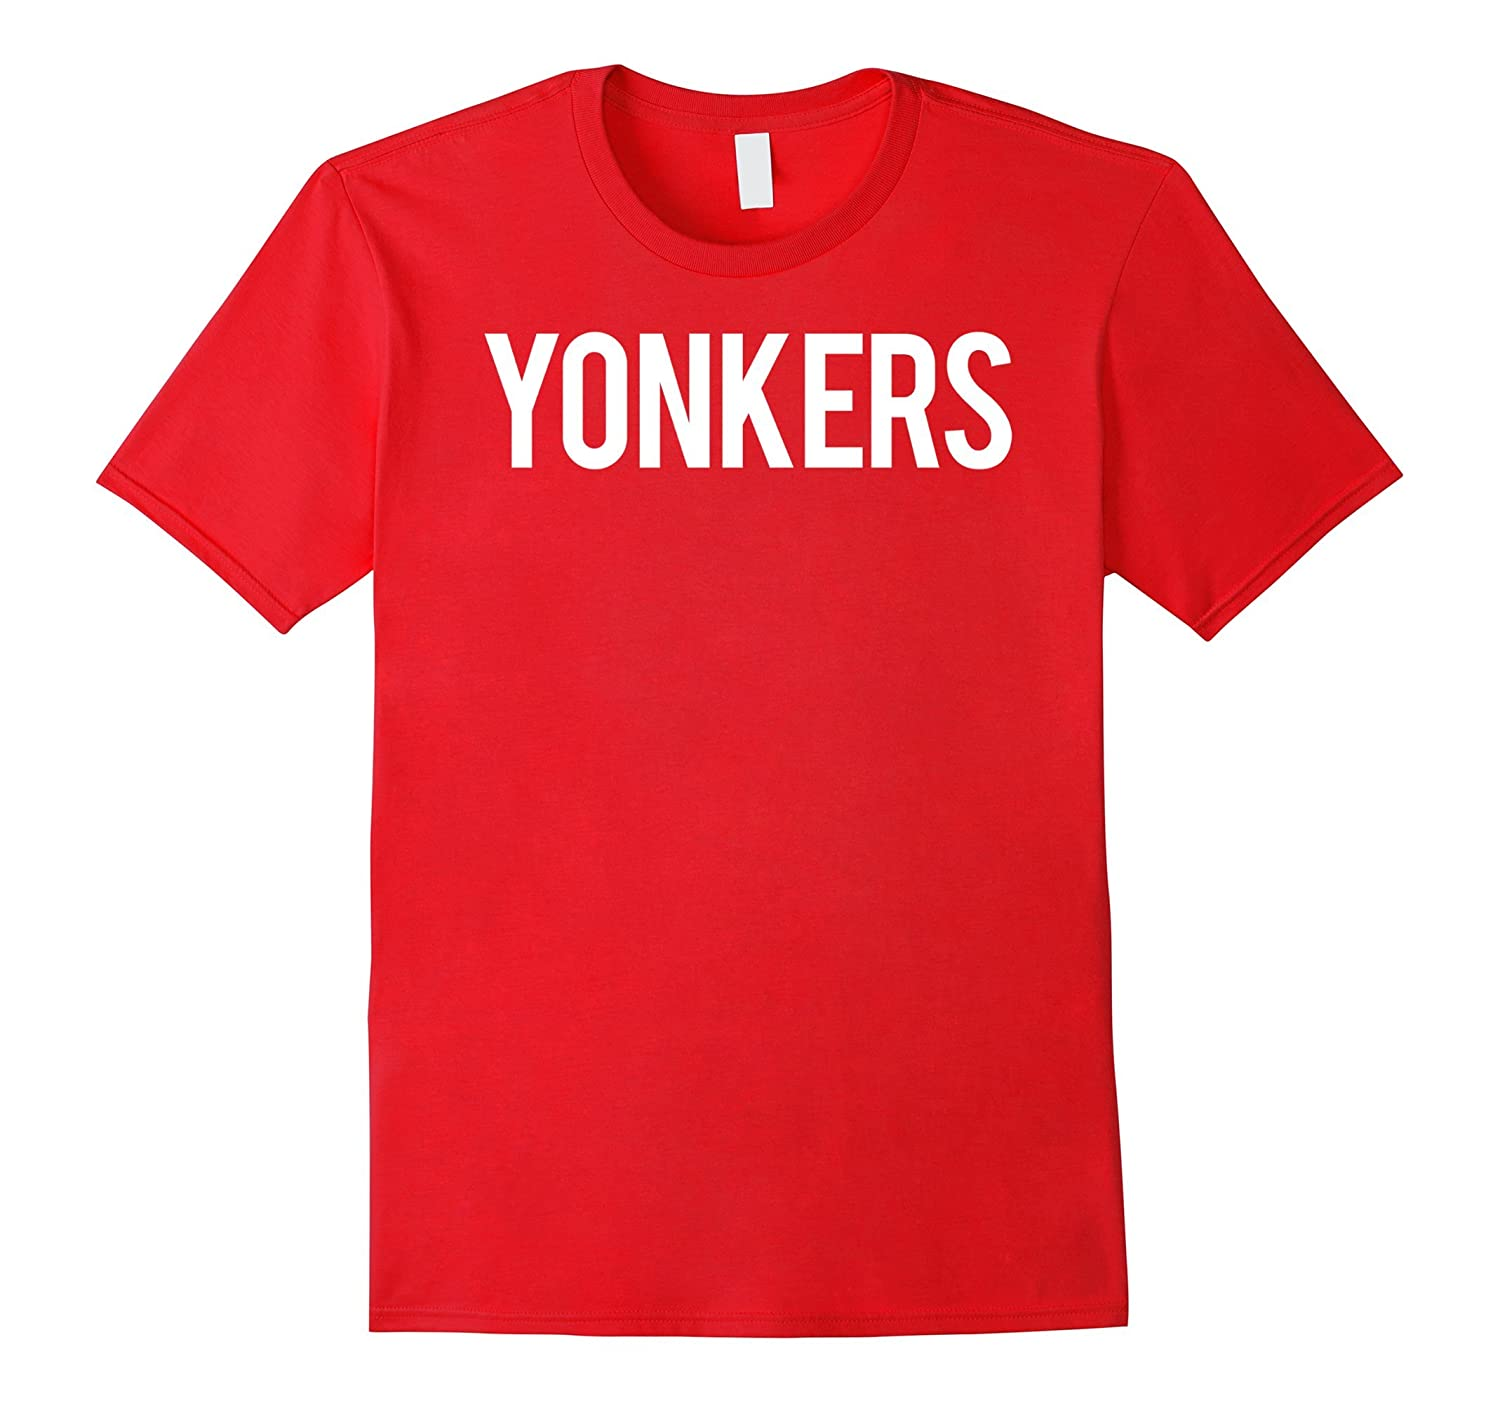 Yonkers T Shirt Cool NY State city fan funny cheap gift tee-Vaci